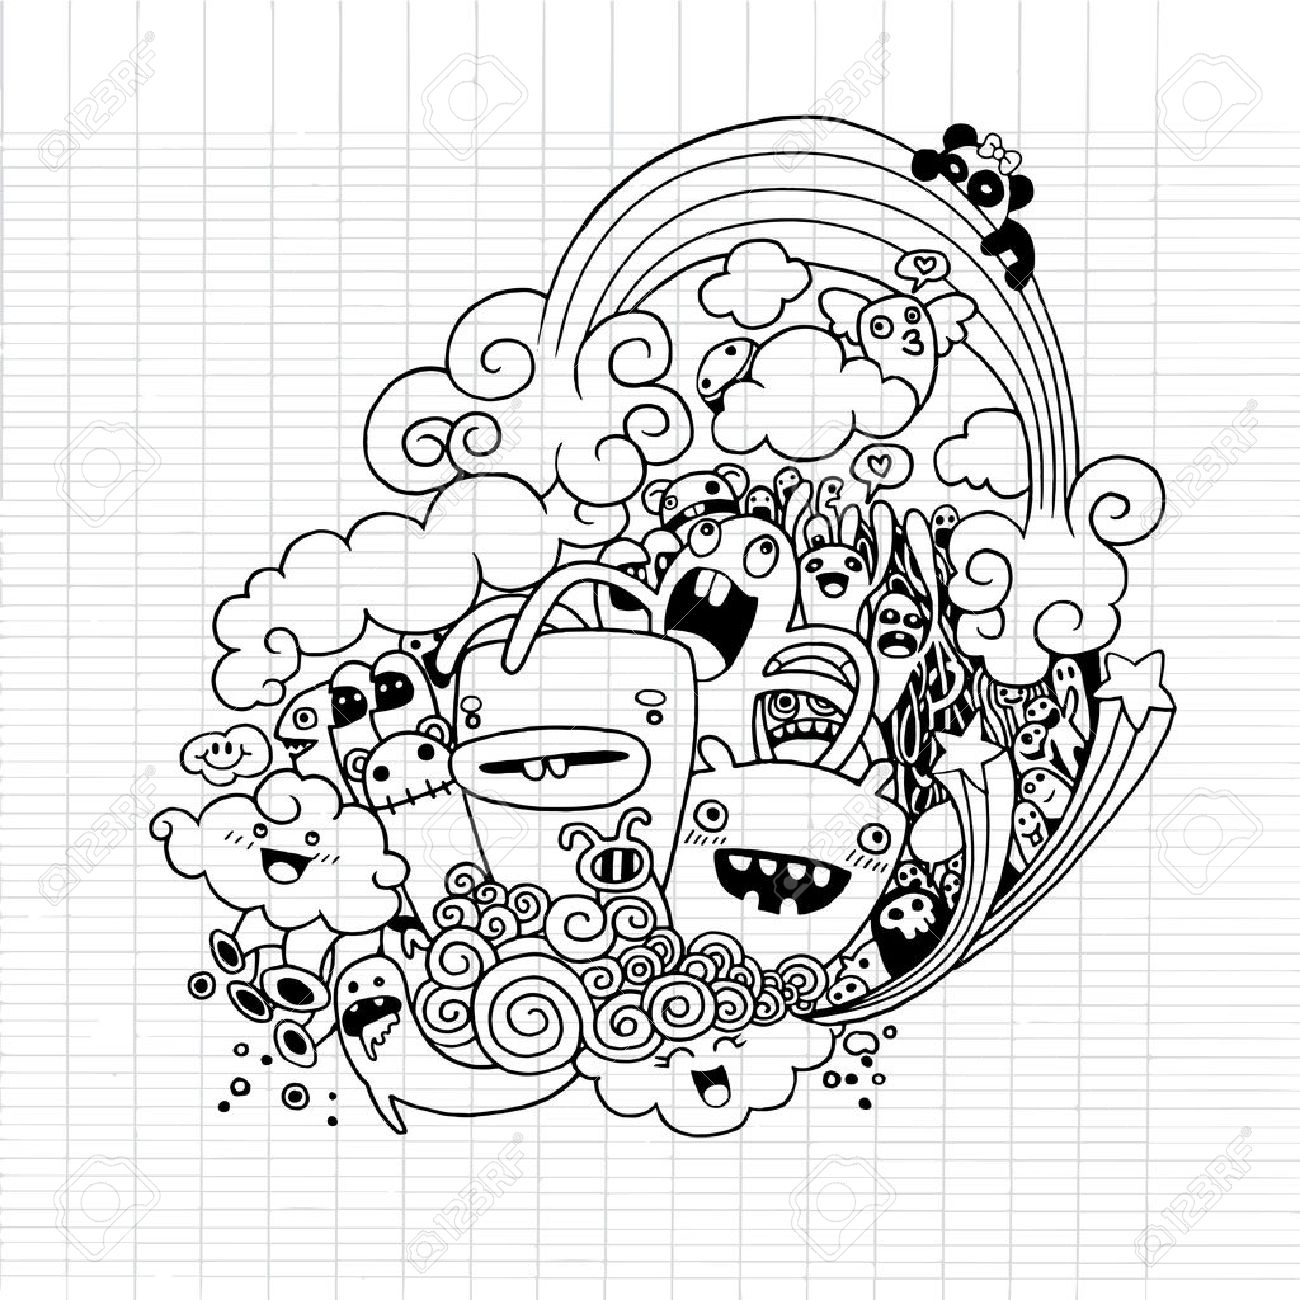 1300x1300 Doodle Monster Stock Photos. Royalty Free Business Images